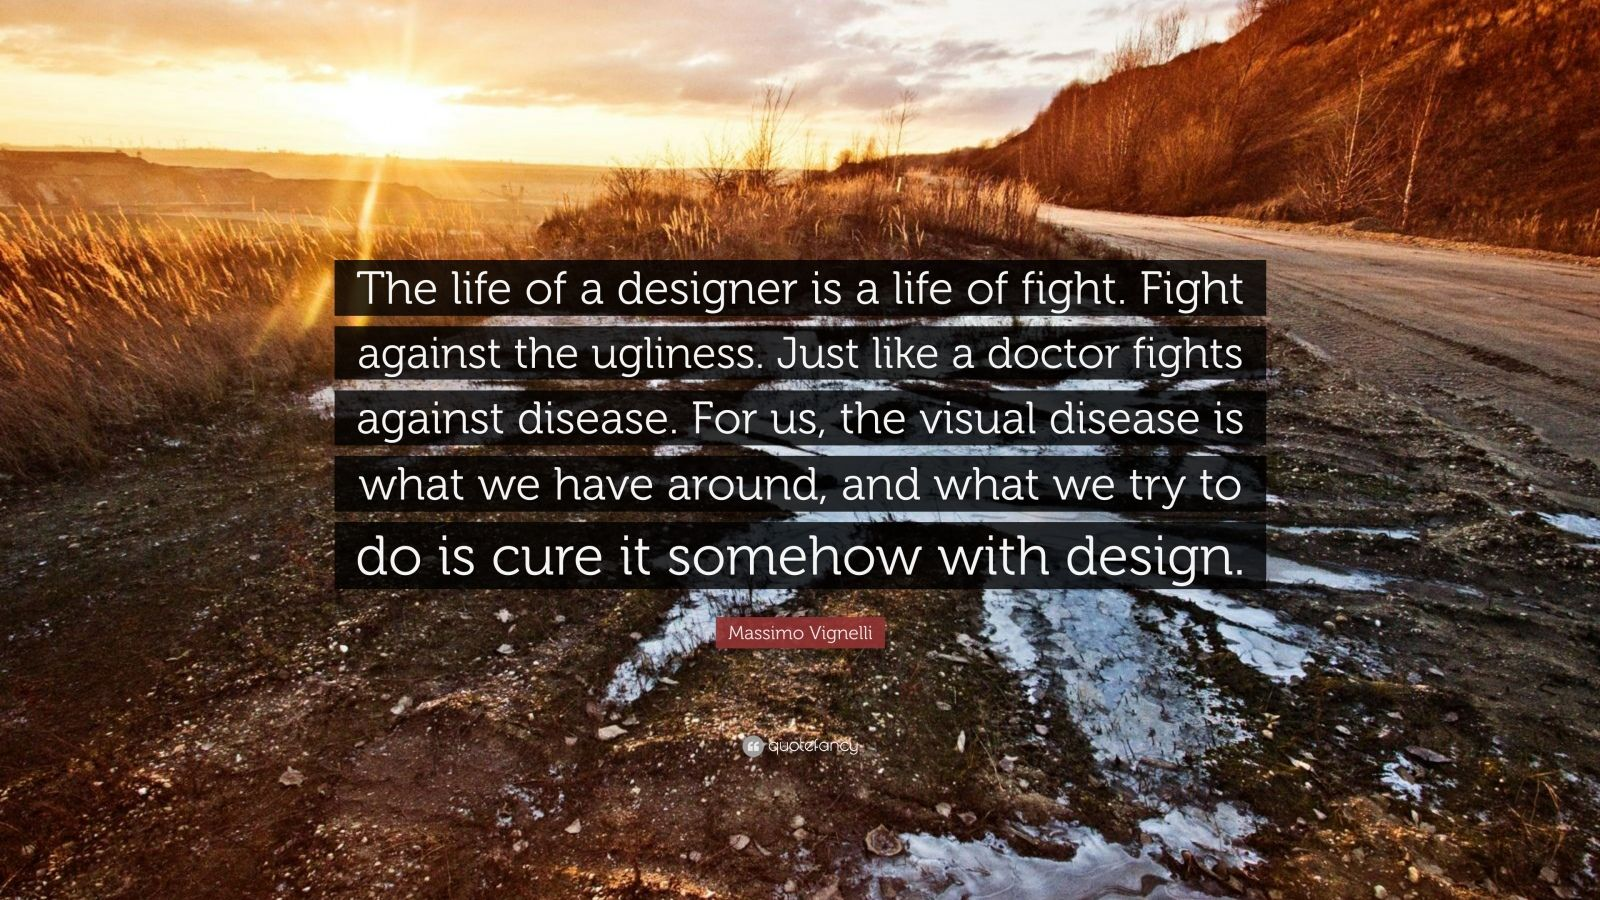 """Massimo Vignelli Quote: """"The life of a designer is a life of fight. Fight against the ugliness. Just like a doctor fights against disease. For us, the visual disease is what we have around, and what we try to do is cure it somehow with design."""""""